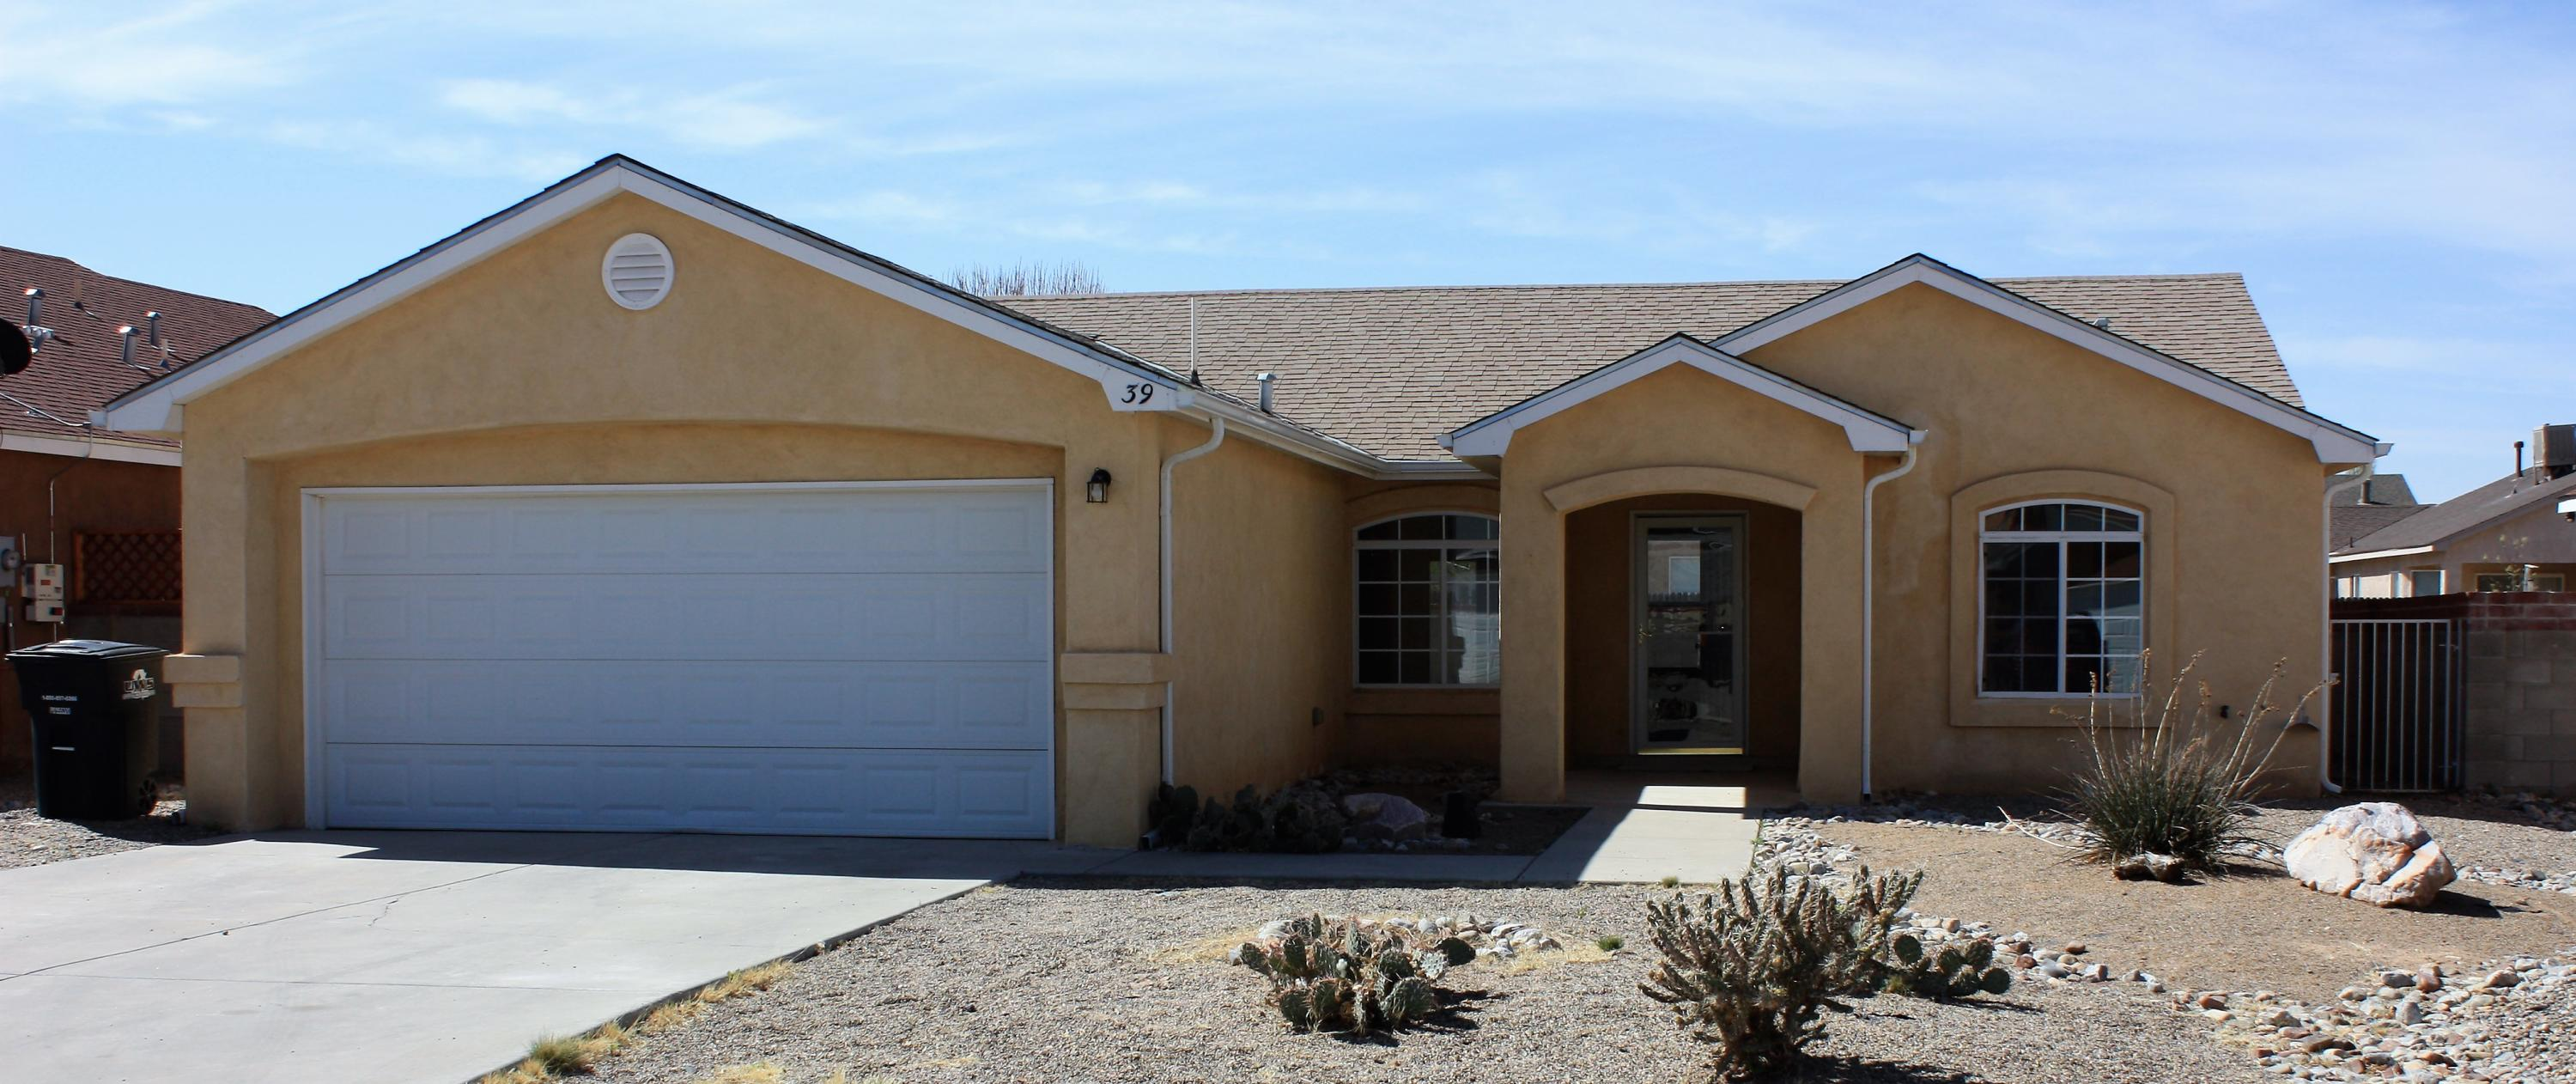 Awesome 3 bedroom, 2 bathroom home with new carpet and stainless appliances.  This functional floorplan has room for the entire family.  The raised ceilings open the entire floor plan.  The refrigerated air will keep you cool on those hot summer nights.  Come take a look at before it's gone.